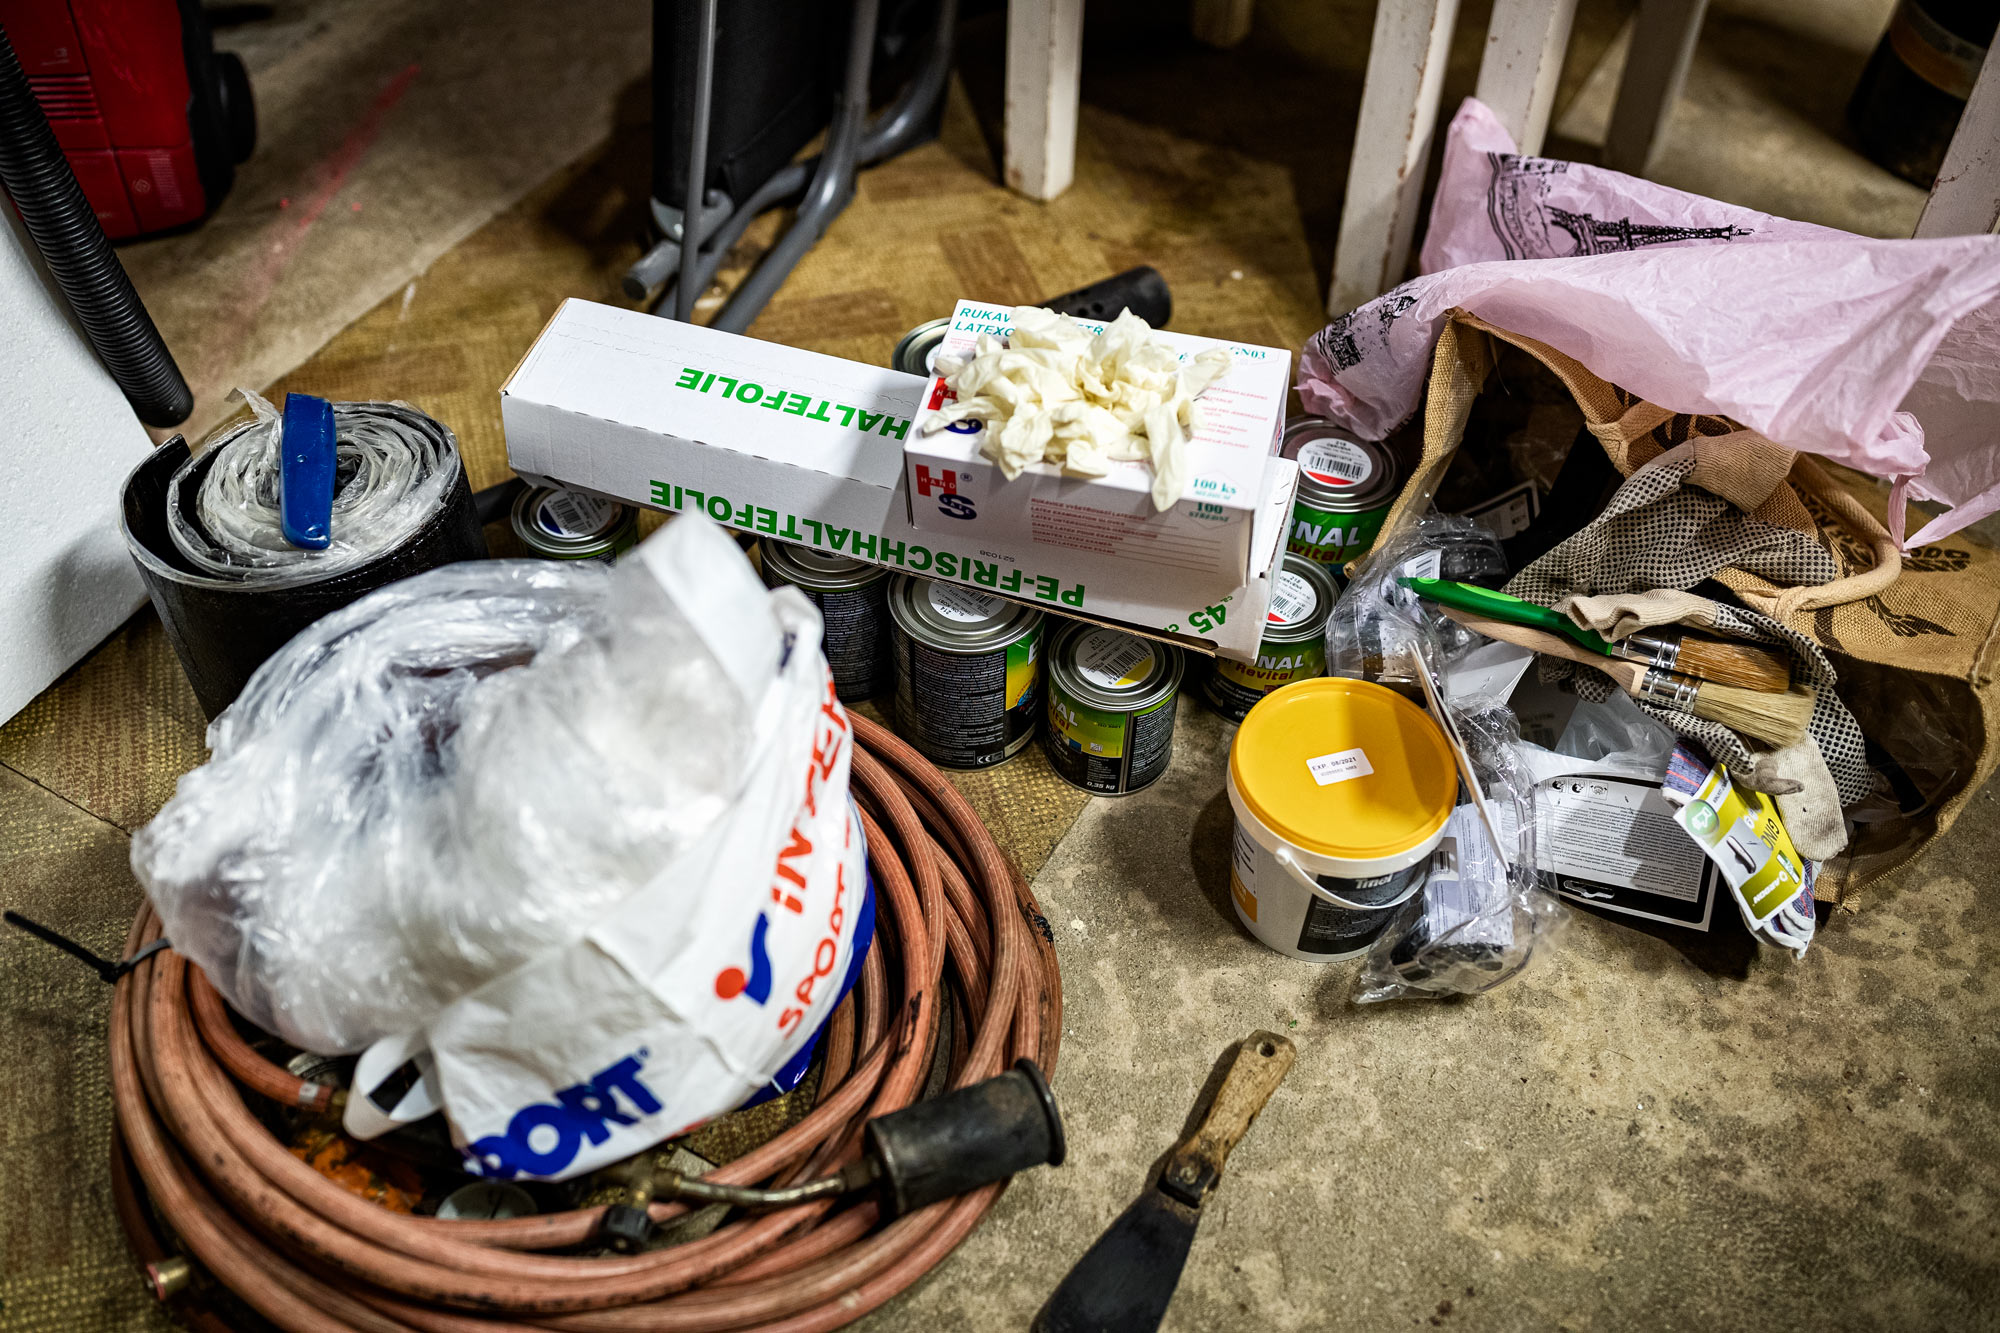 Buckets of paint, a blow torch, brushes and other tools and utensils laying on the floor.